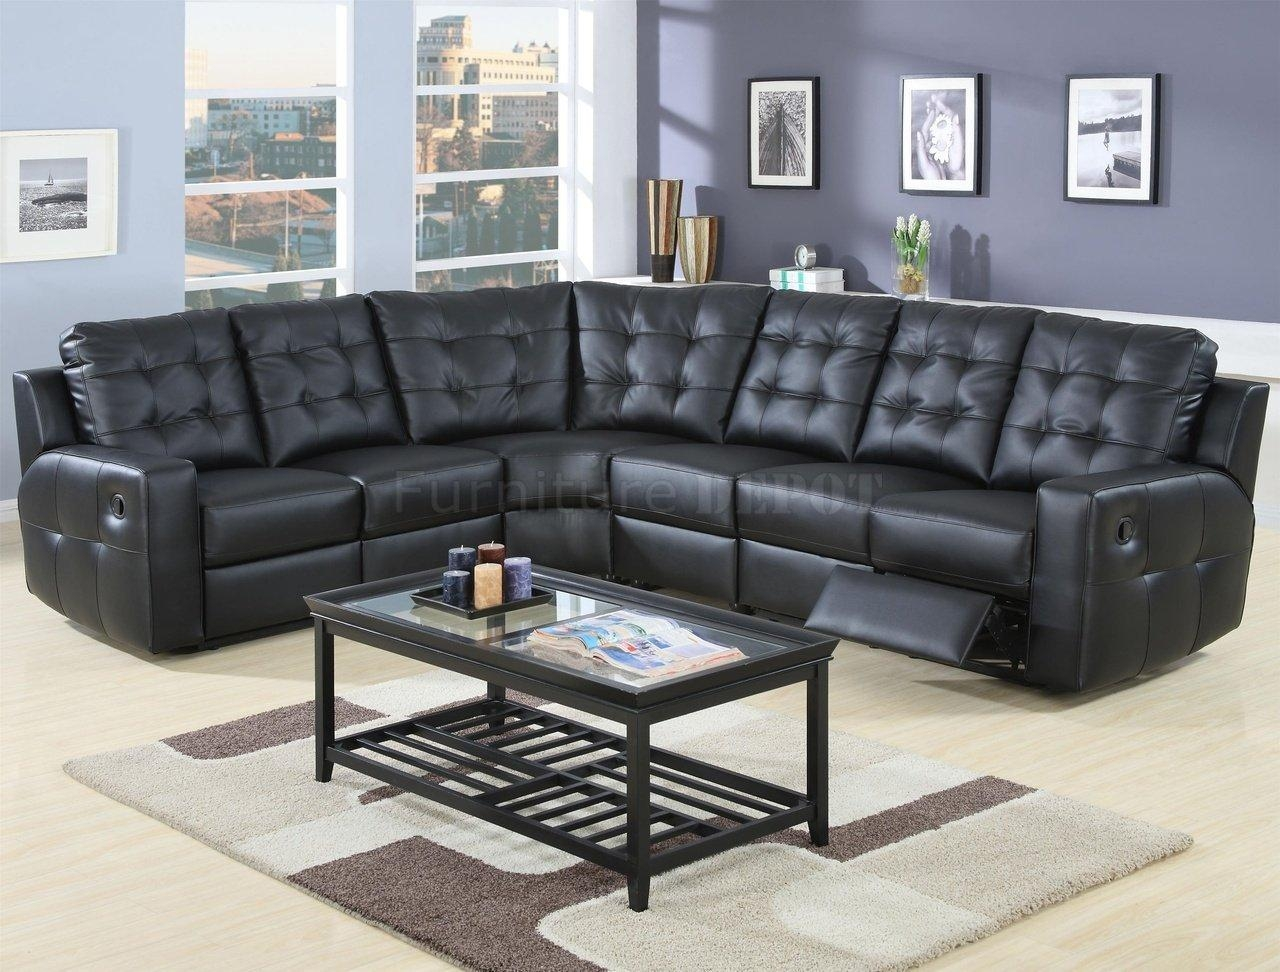 Are Lazy Boy Sofas Good – Leather Sectional Sofa Intended For Lazy Boy Leather Sectional (View 17 of 20)